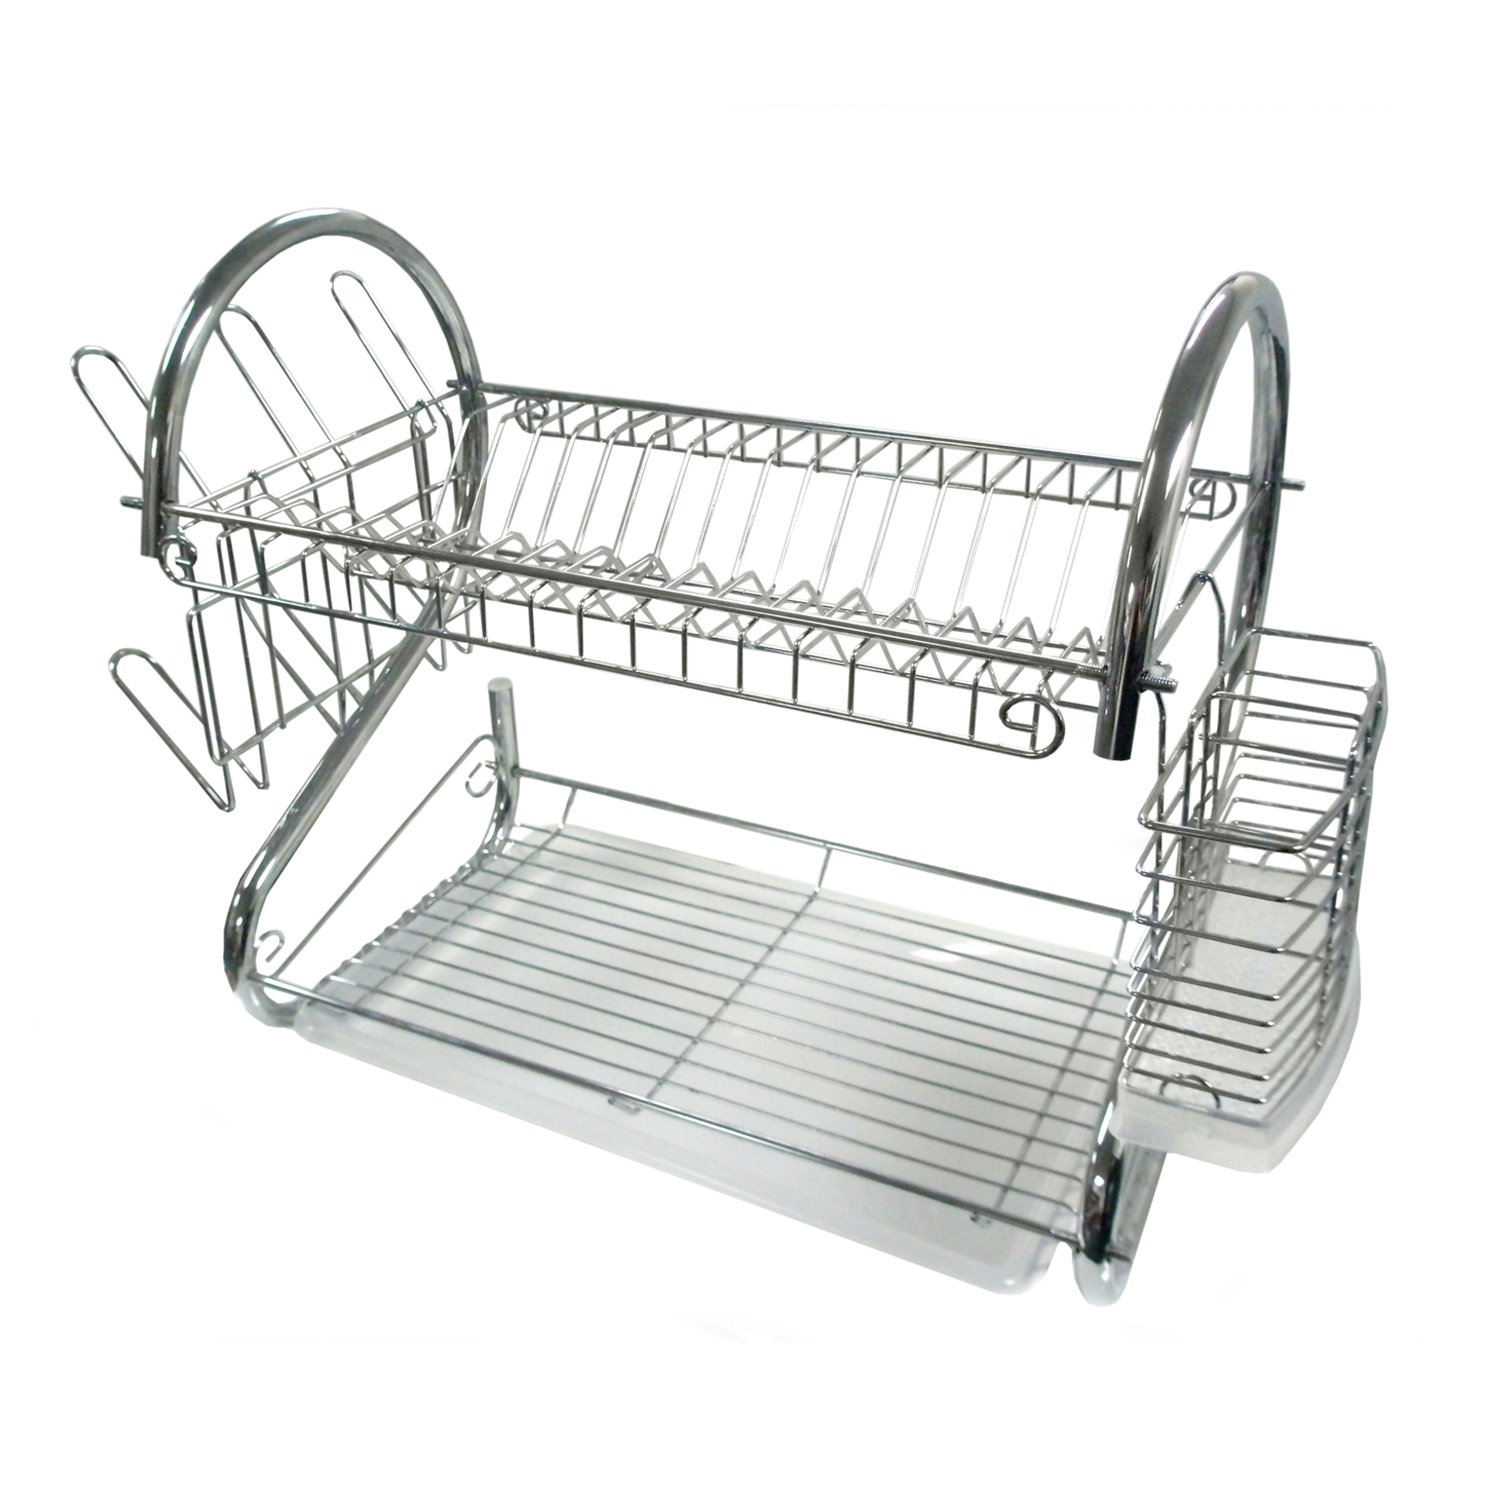 better chef dr 16 2 tier dish rack 16 inch chrome ebay. Black Bedroom Furniture Sets. Home Design Ideas